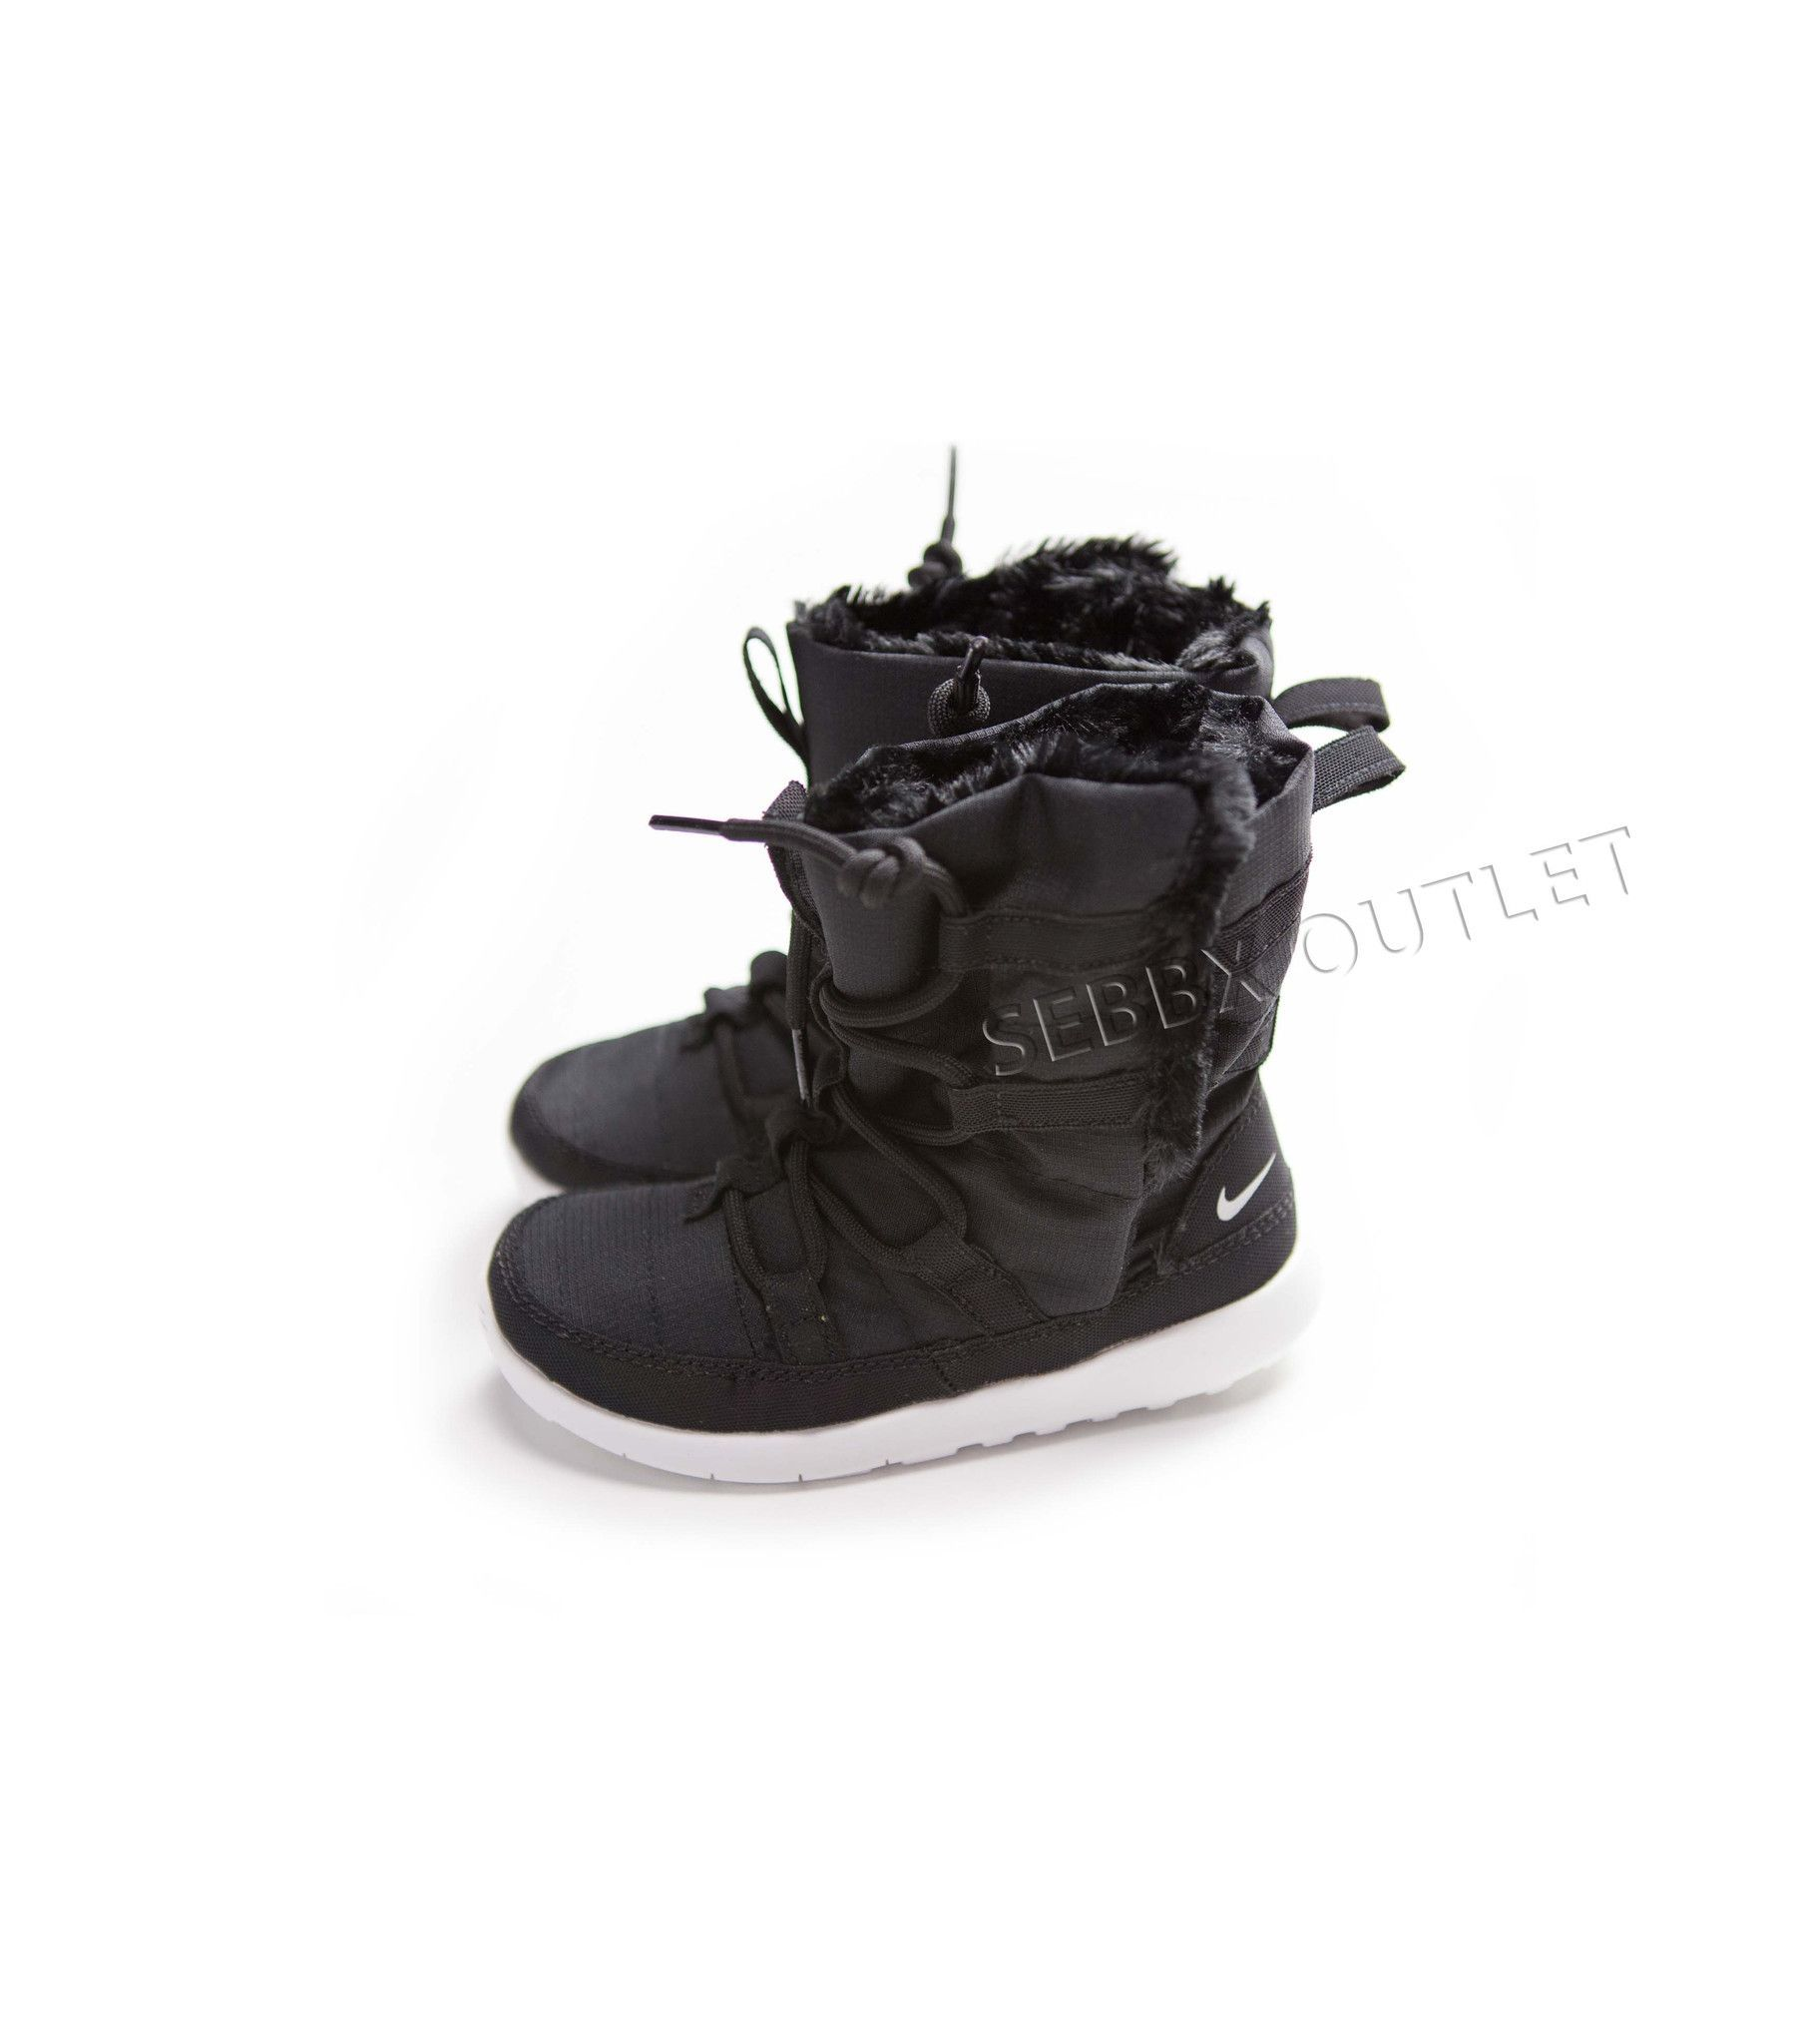 1ecb507aa7cd Nike Roshe One Hi Flash Boots Black Metallic